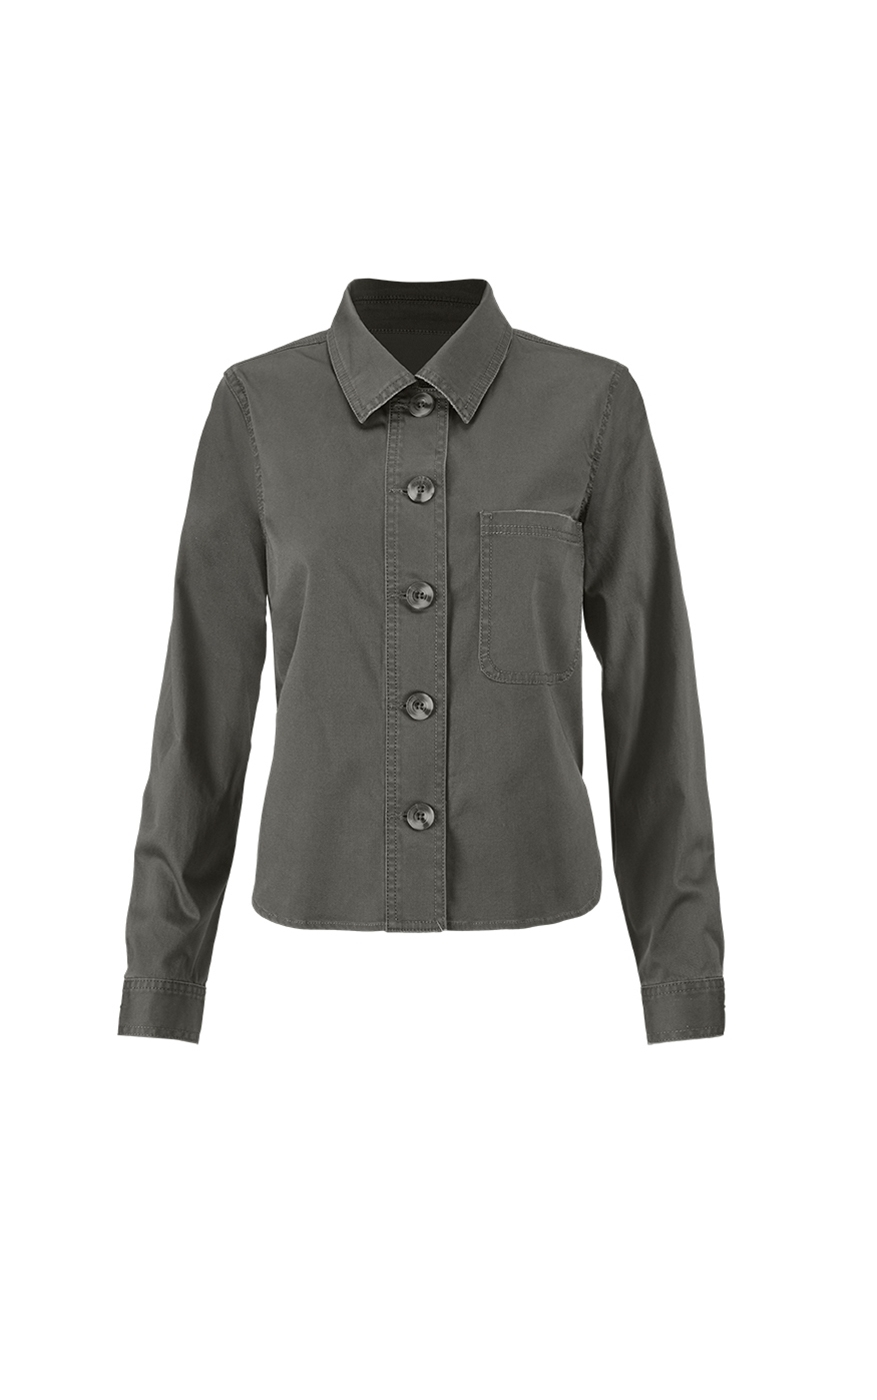 cabi's Crossroads Jacket